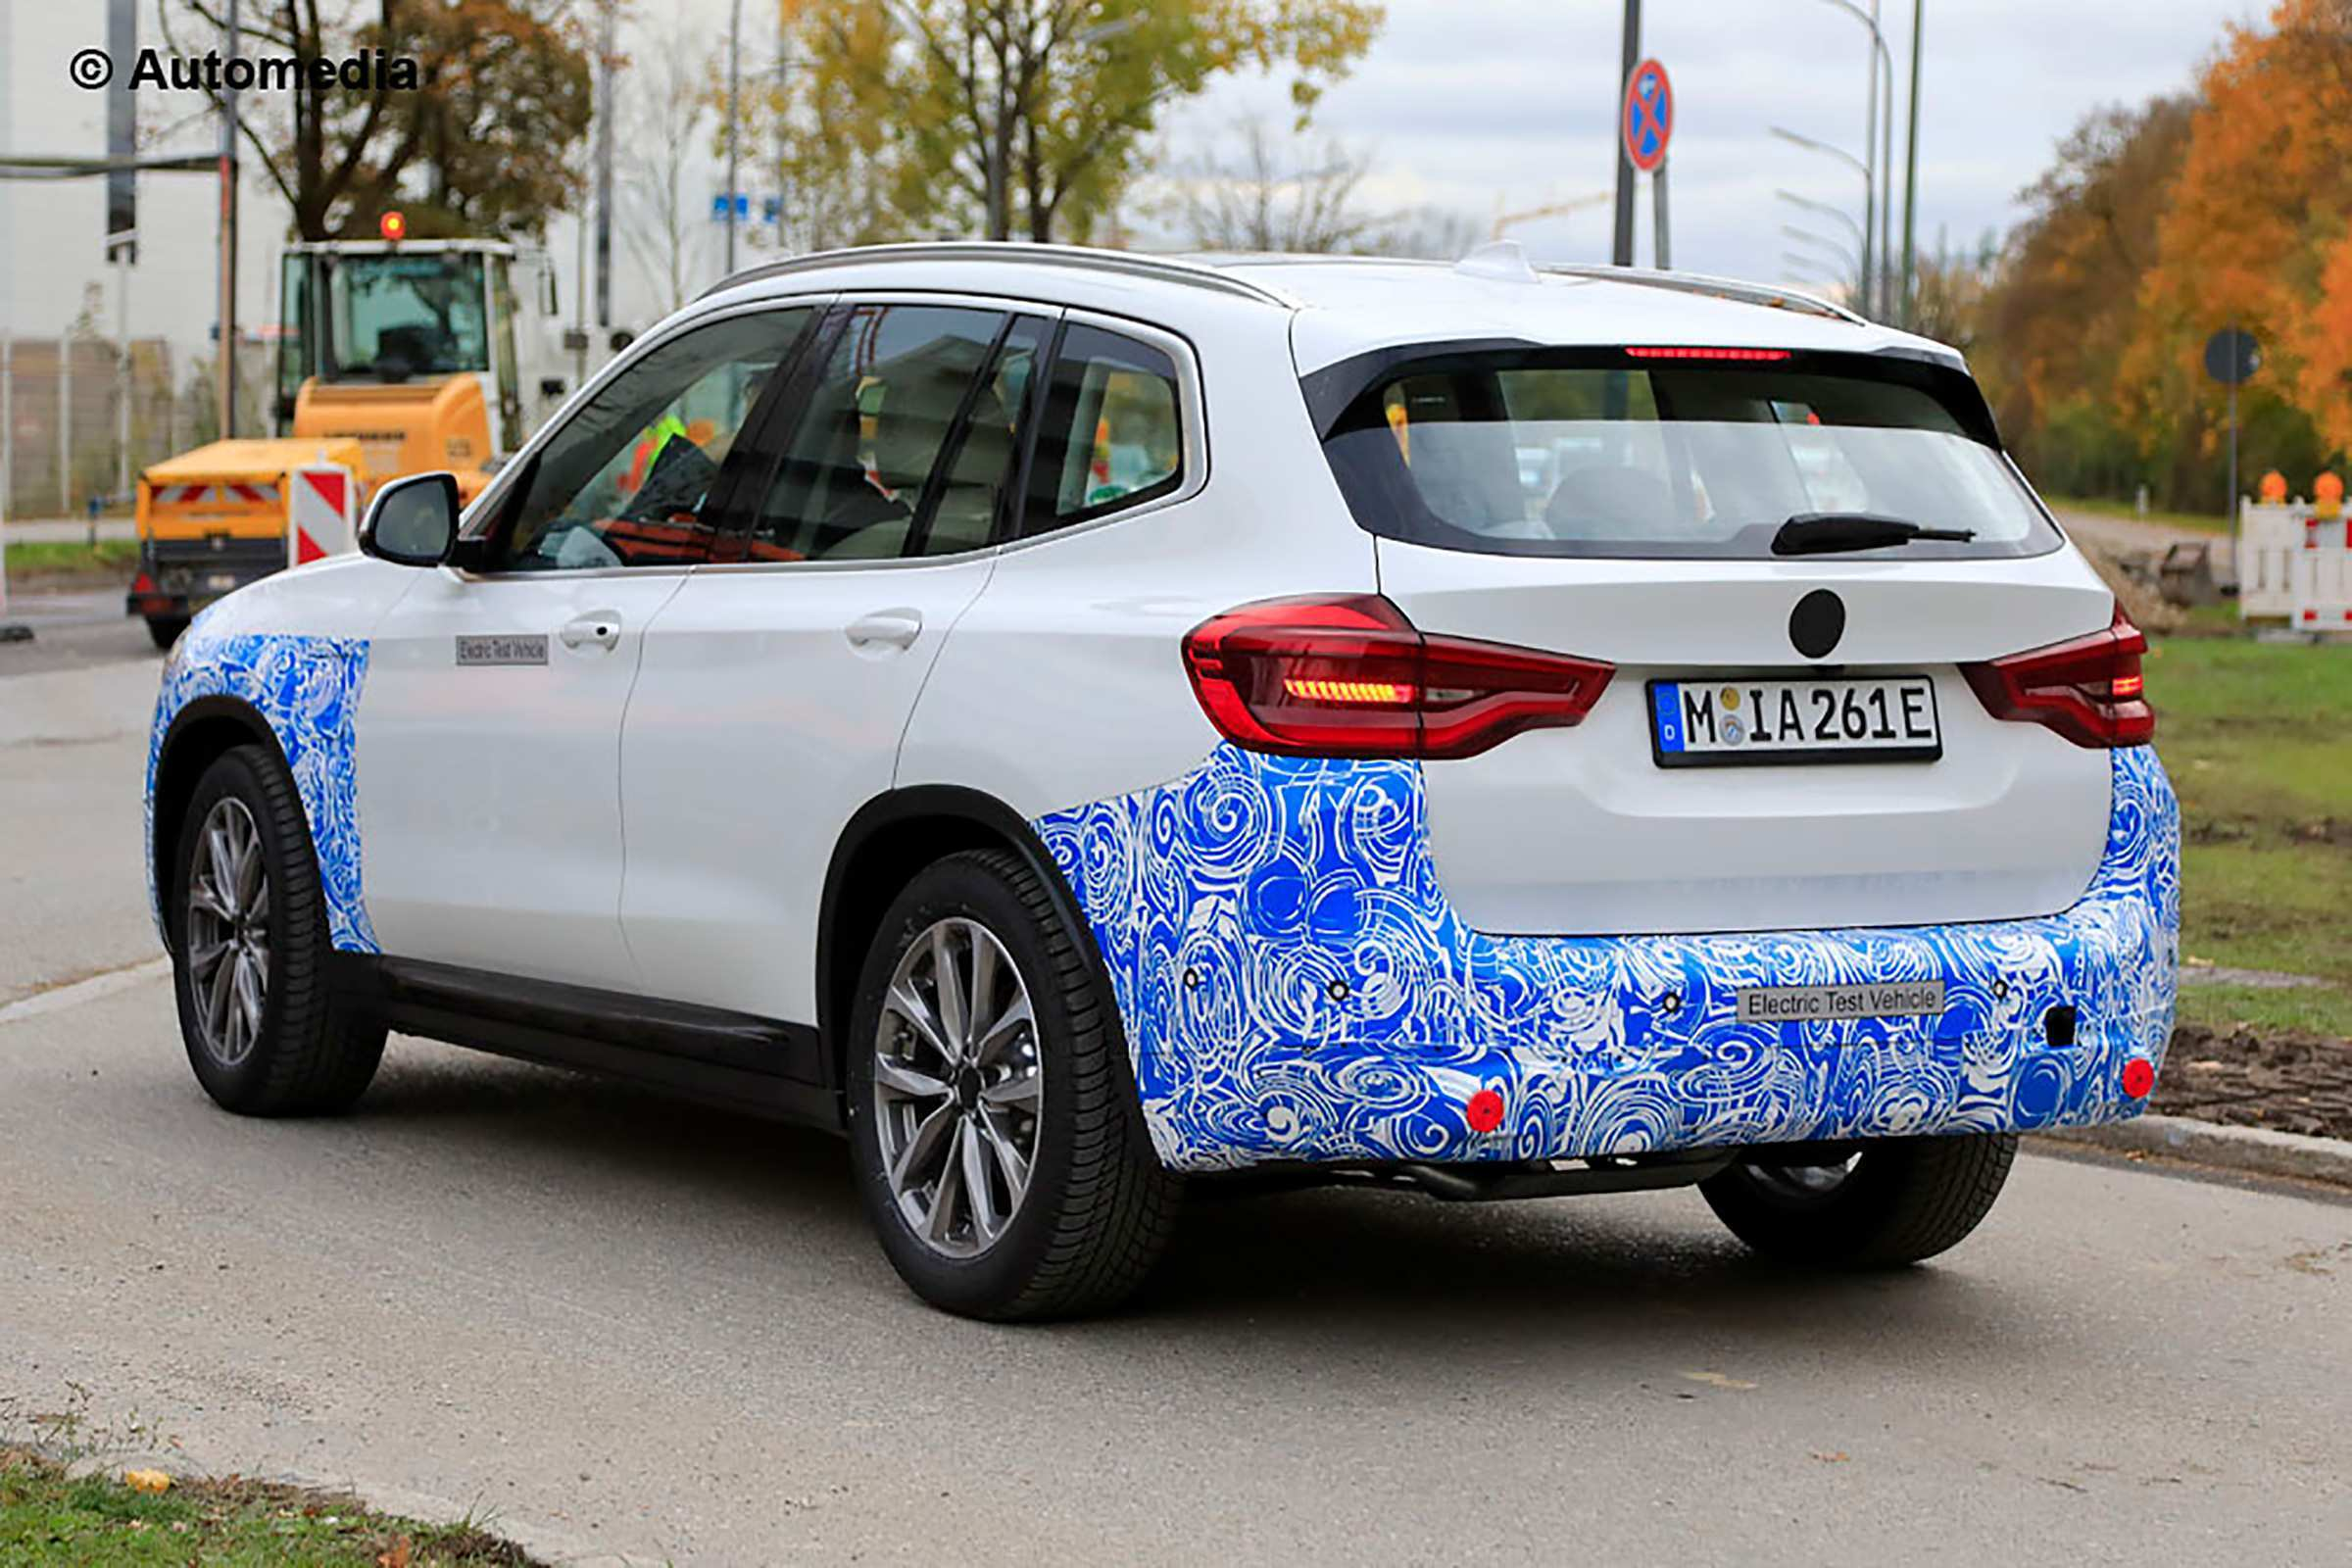 37 All New The Bmw New Suv 2019 Spy Shoot Price and Review by The Bmw New Suv 2019 Spy Shoot